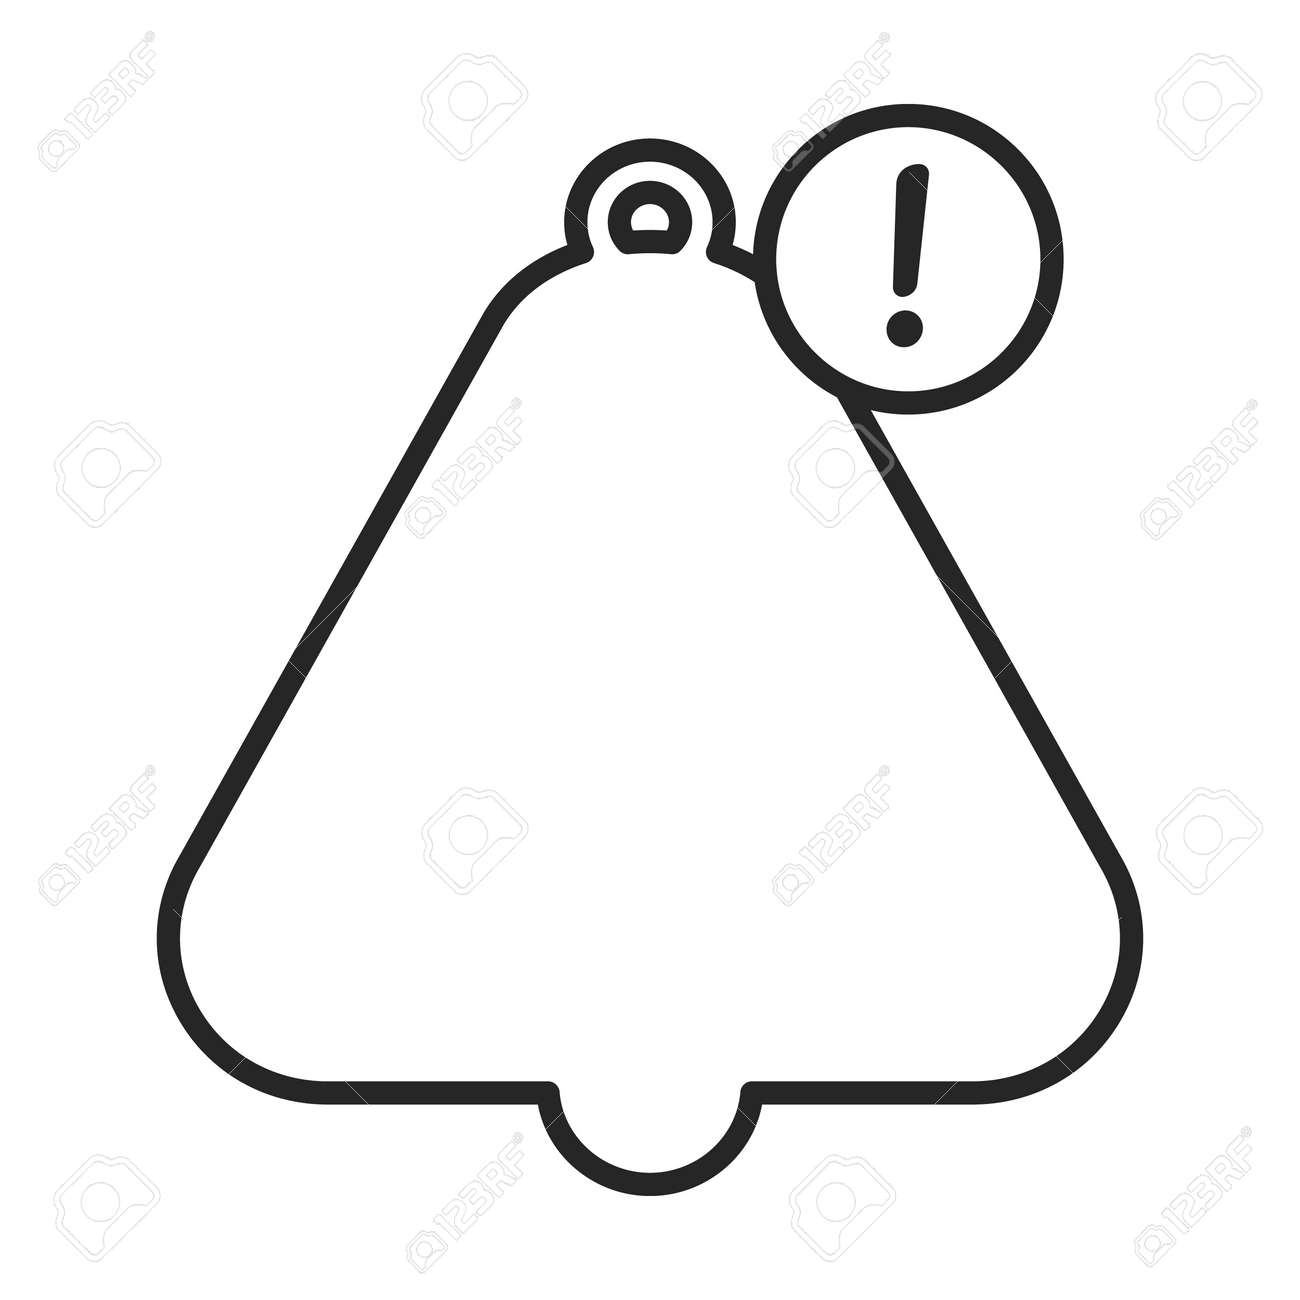 Bell notification vector outline icon. Vector illustration bell notification on white background. Isolated outline illustration icon of alert. - 168840974